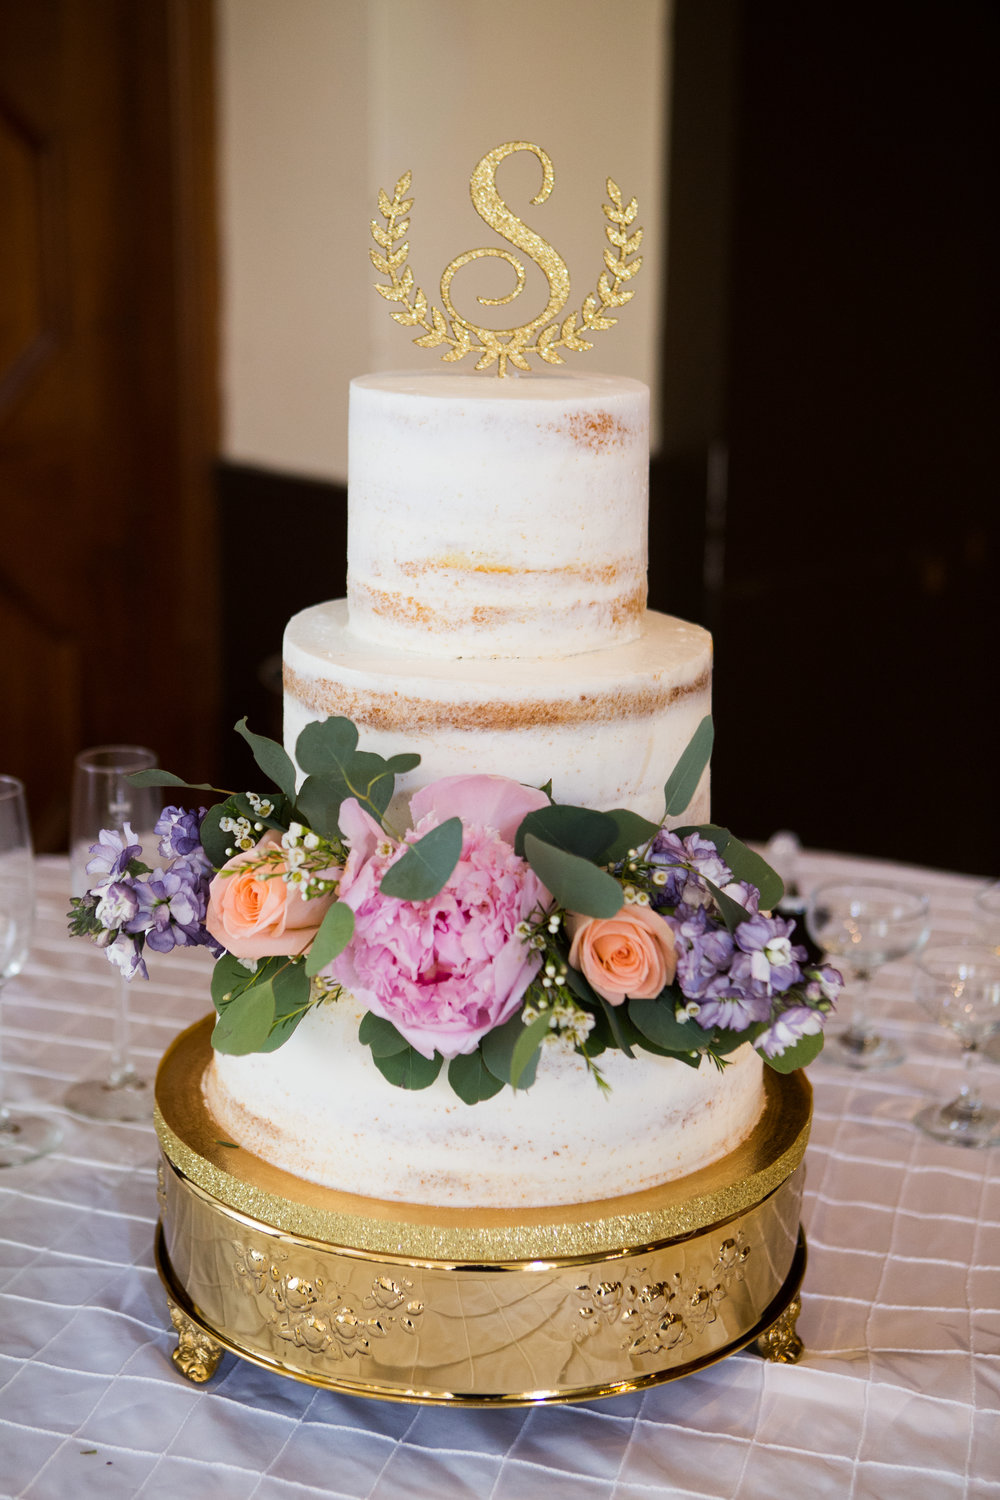 Rachel Erin Photography  Cake by Ambrosia Bakery